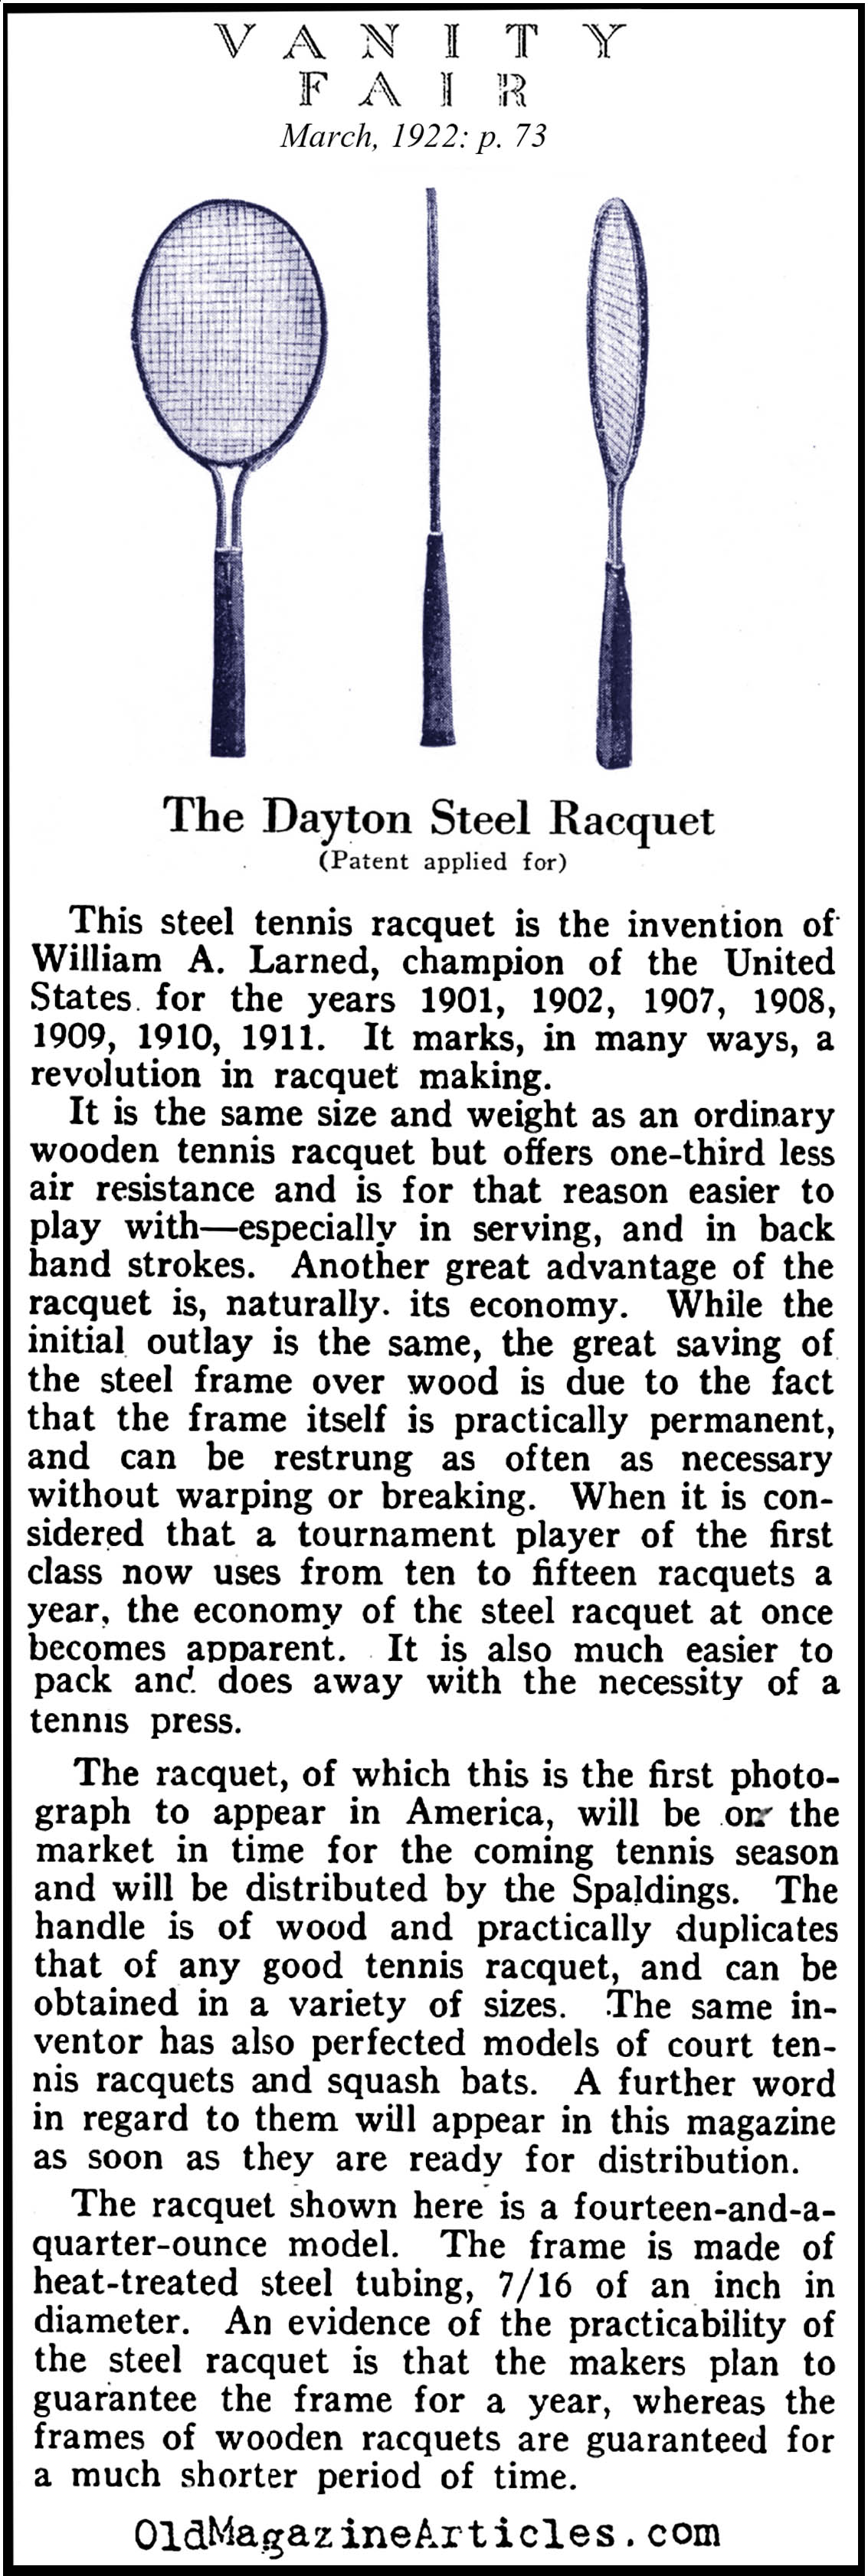 The Steel Tennis Racket Makes It's Appearance (Vanity Fair Magazine, 1922)